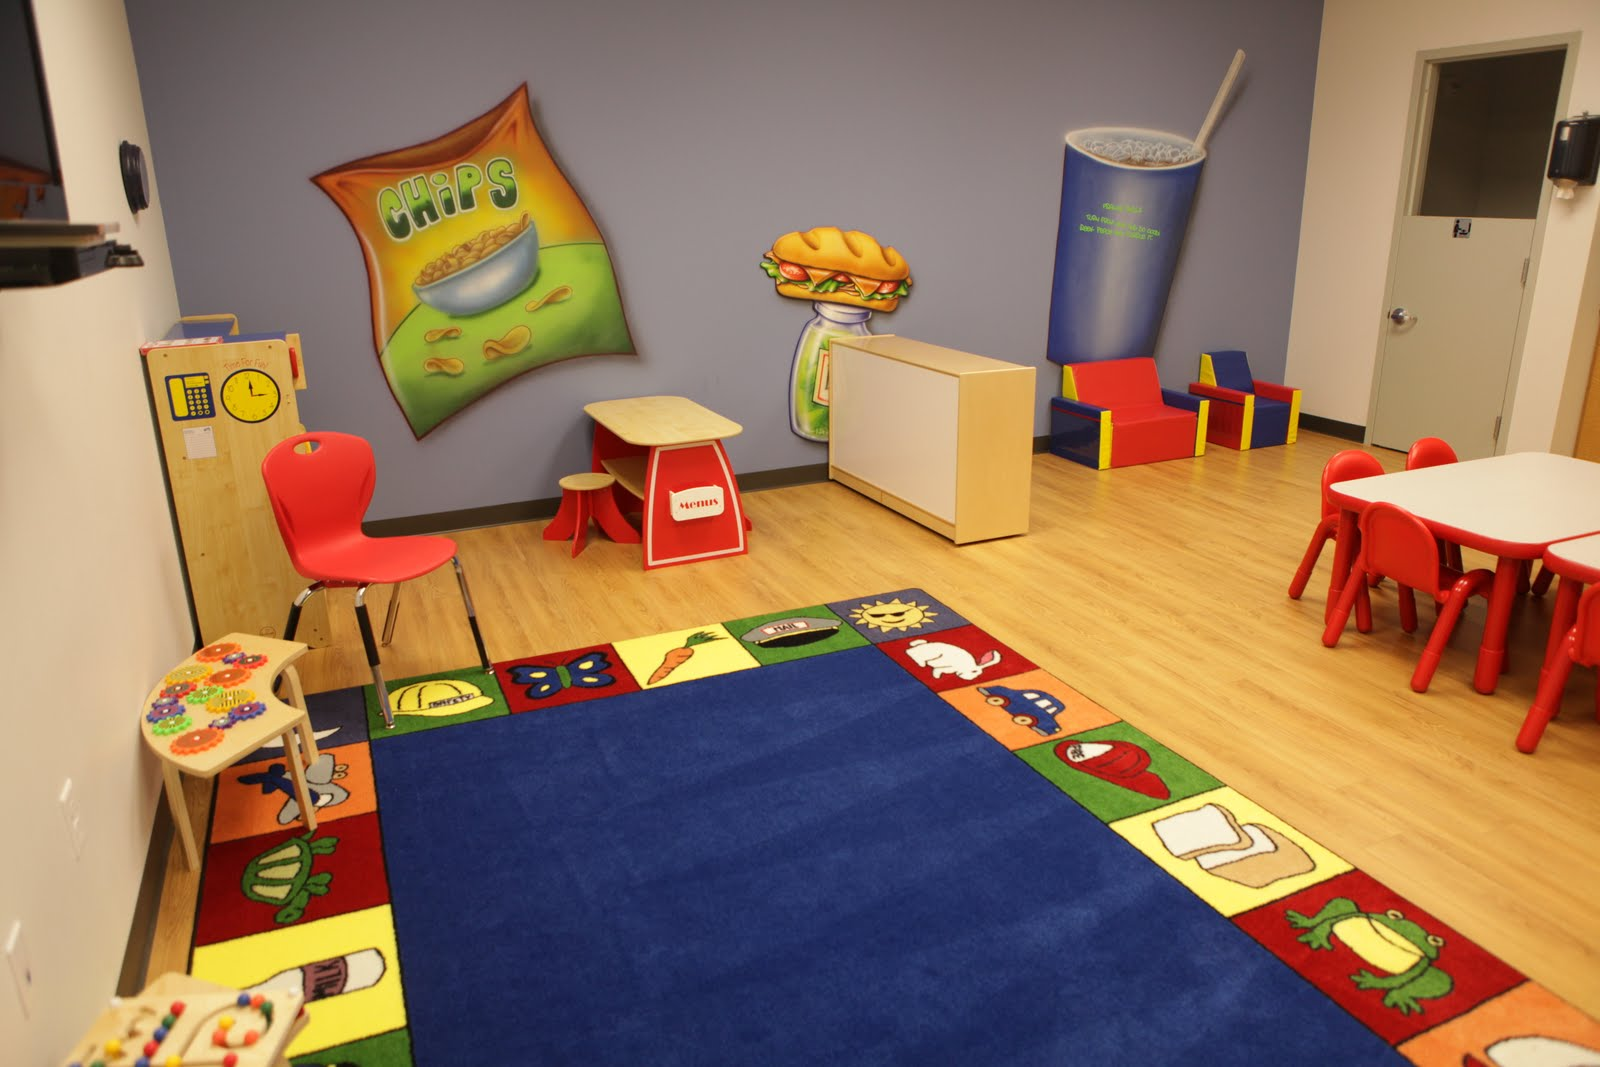 Children's Church Classroom Designs http://worldsofwow.blogspot.com/2011/05/north-monroe-baptist-church.html